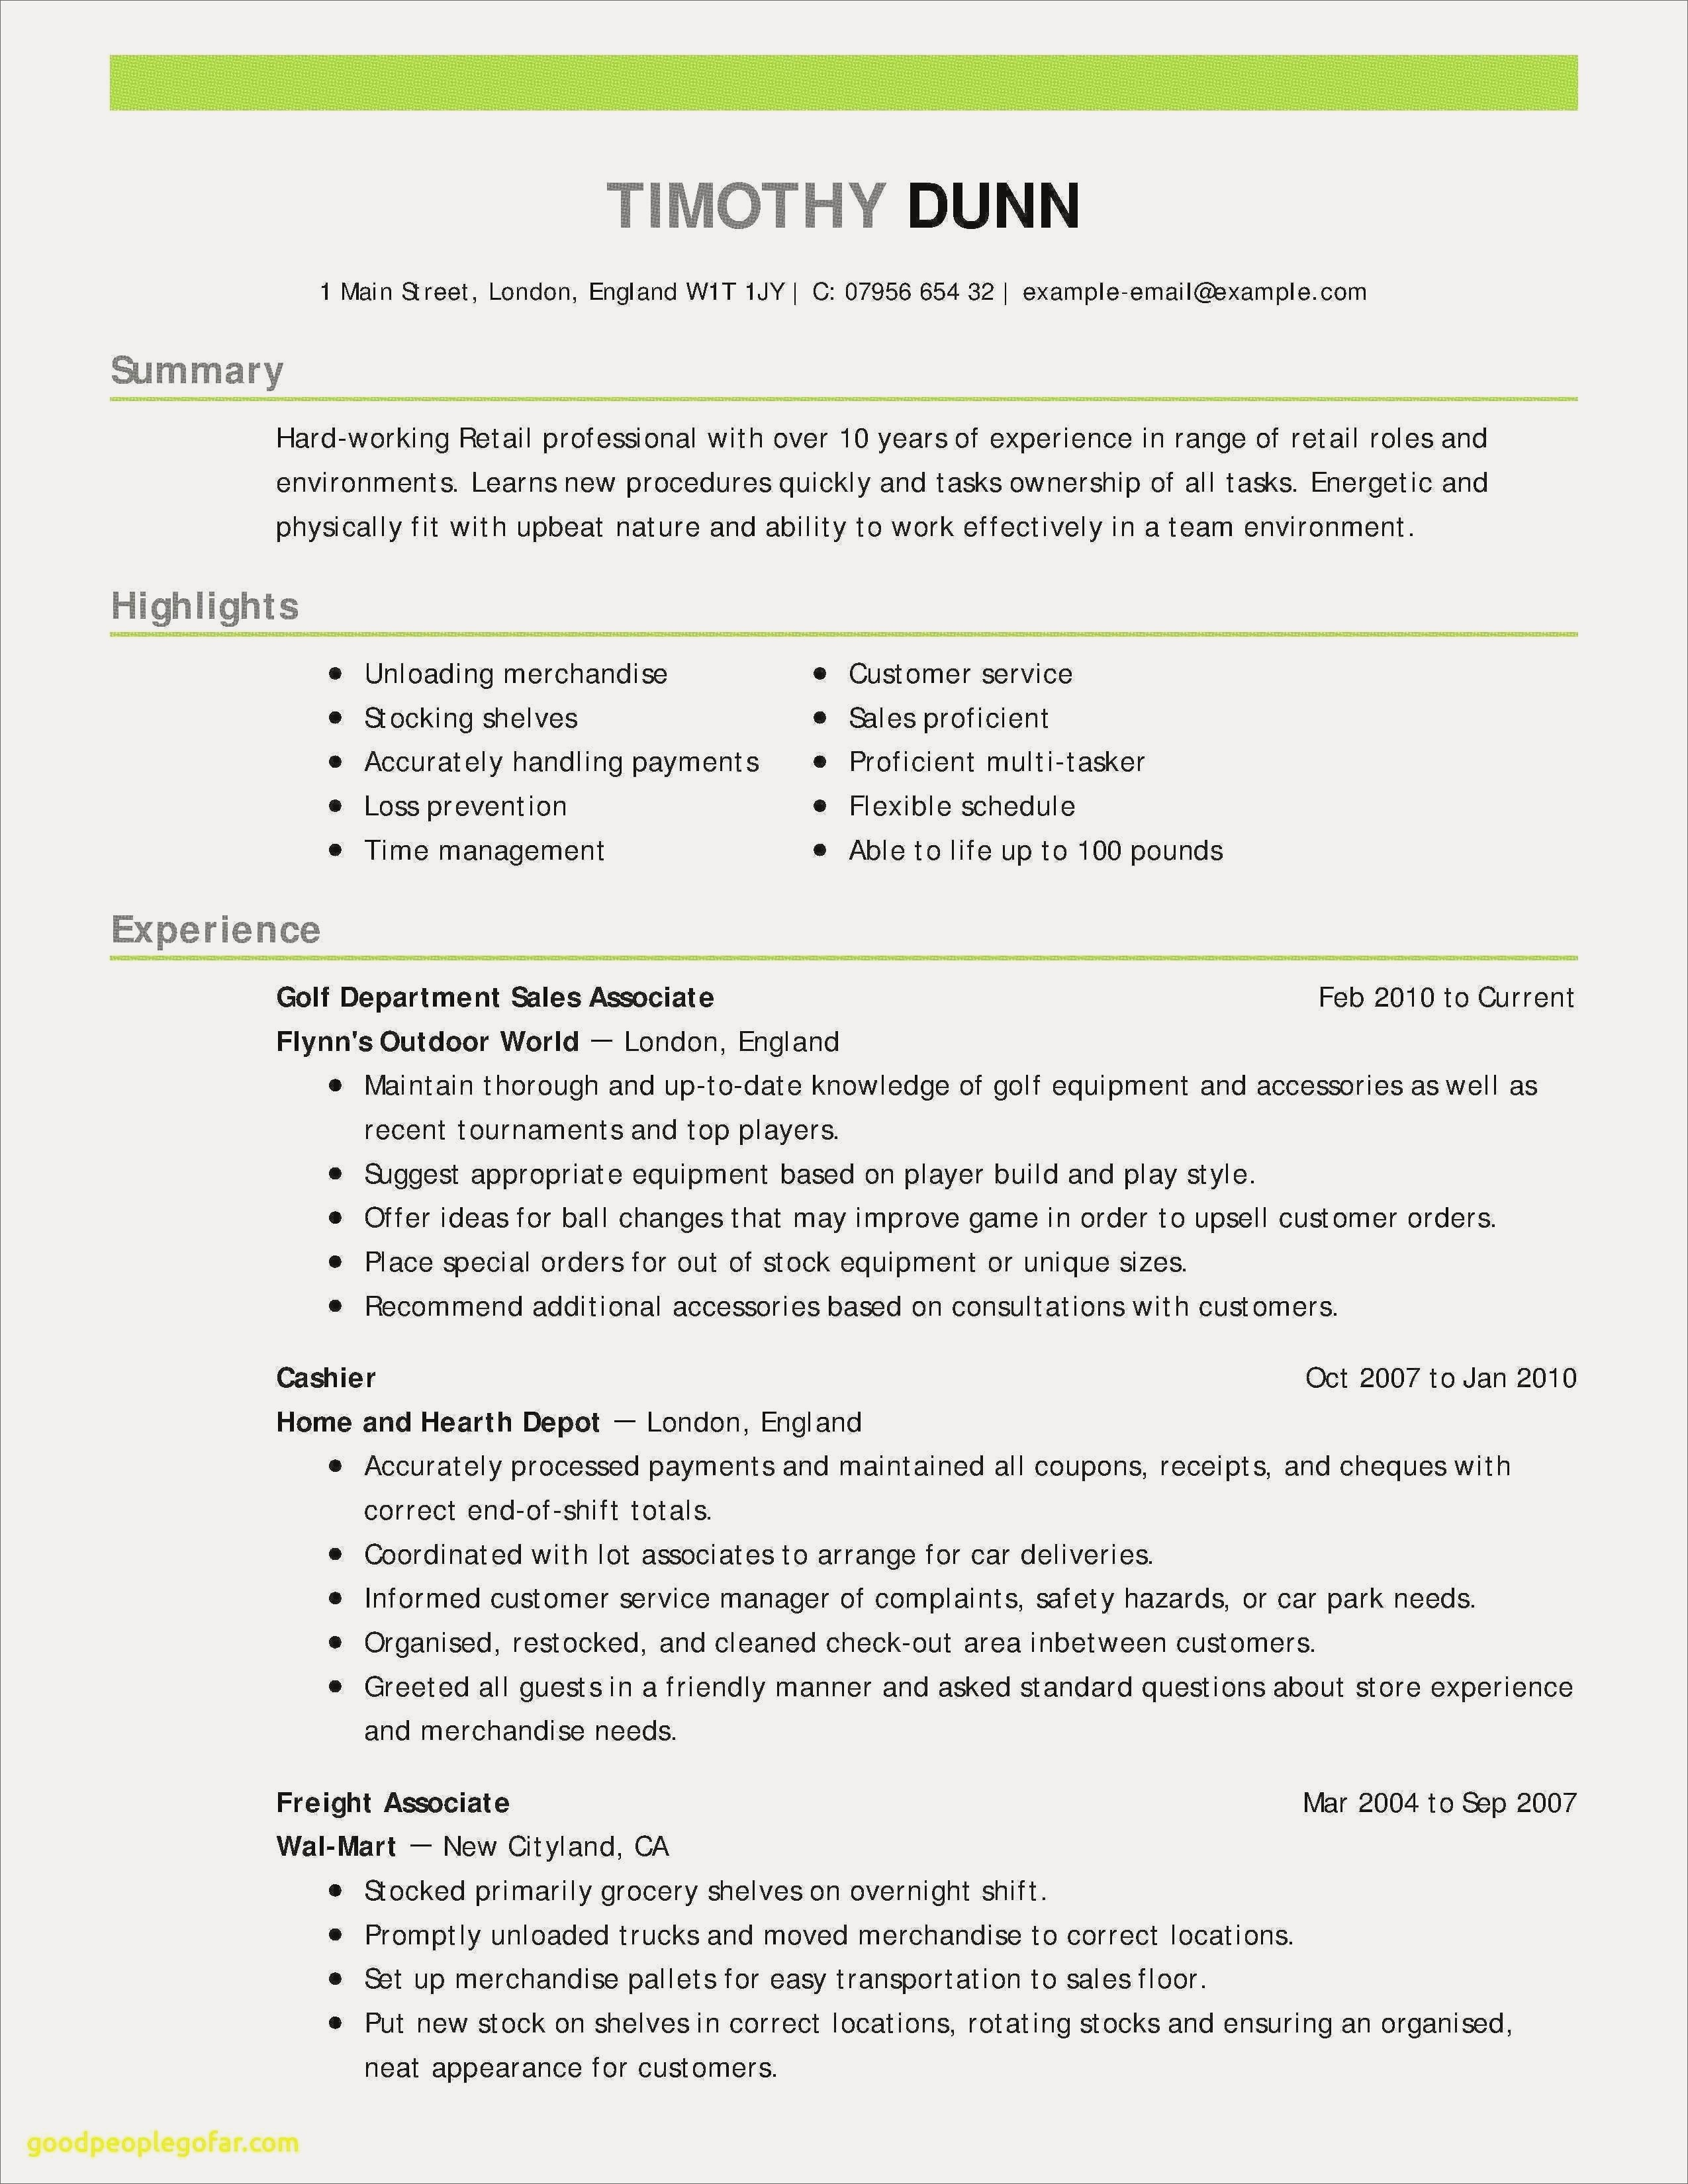 Social Work Resume Sample - Valet Parking Resume Sample Refrence Customer Service Resume Sample